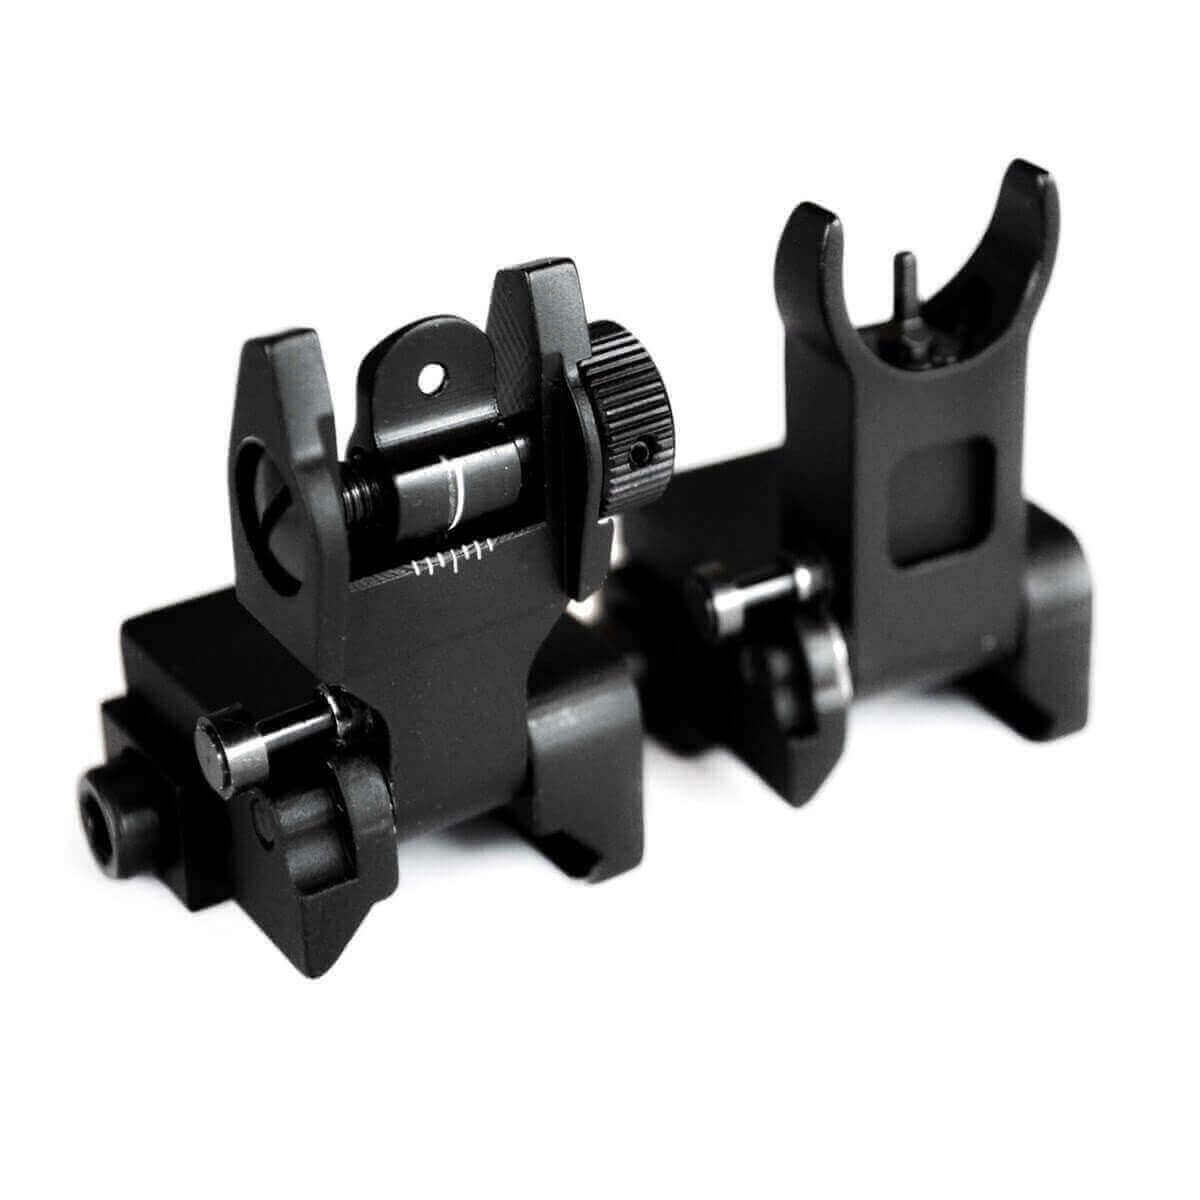 Best Backup Iron Sights 2020